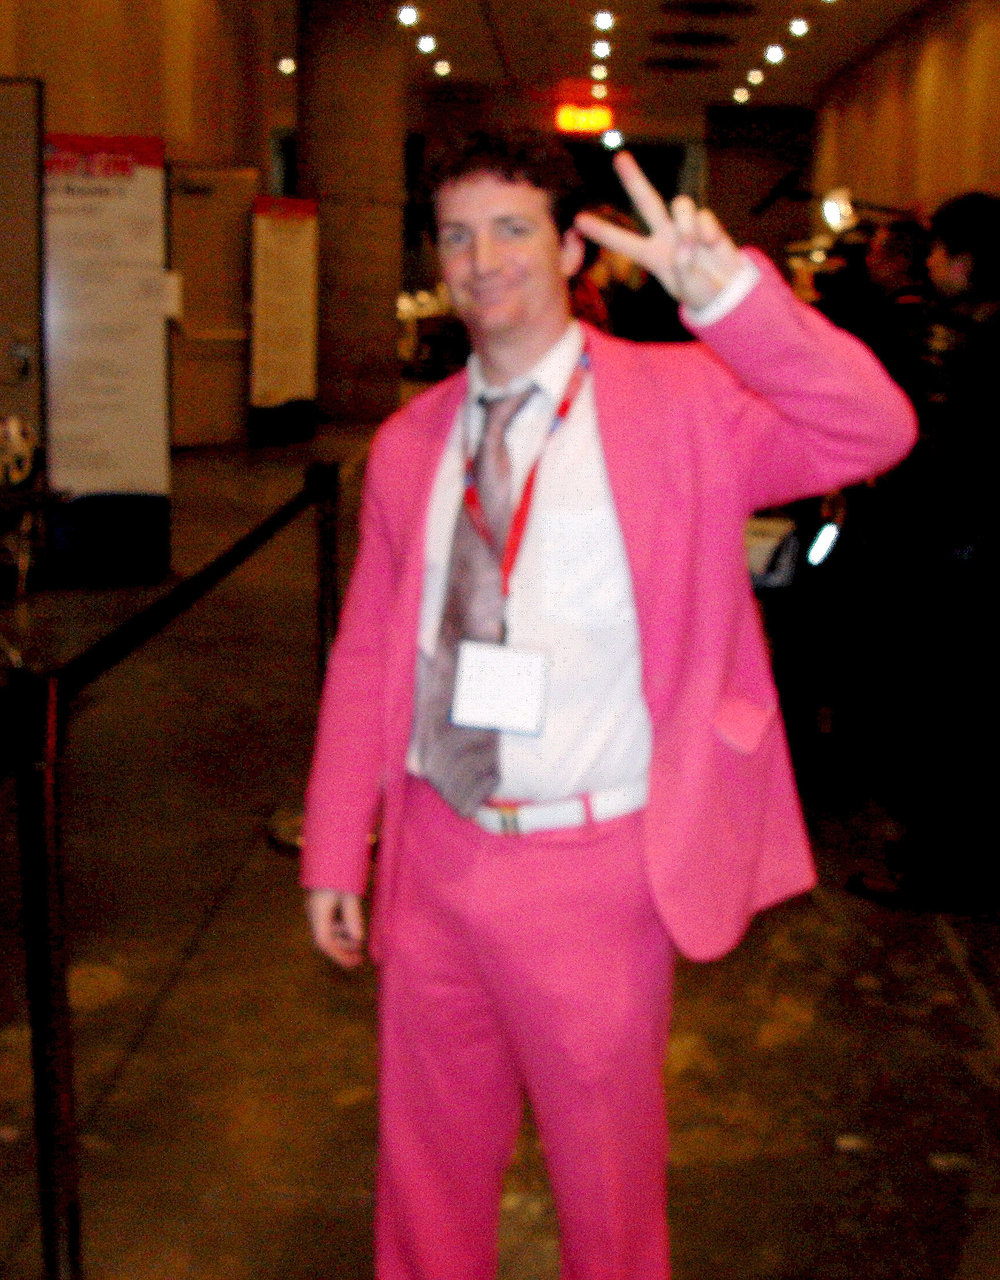 Sadly dark, but Grady Hendrix's awesome pink suit shines on.